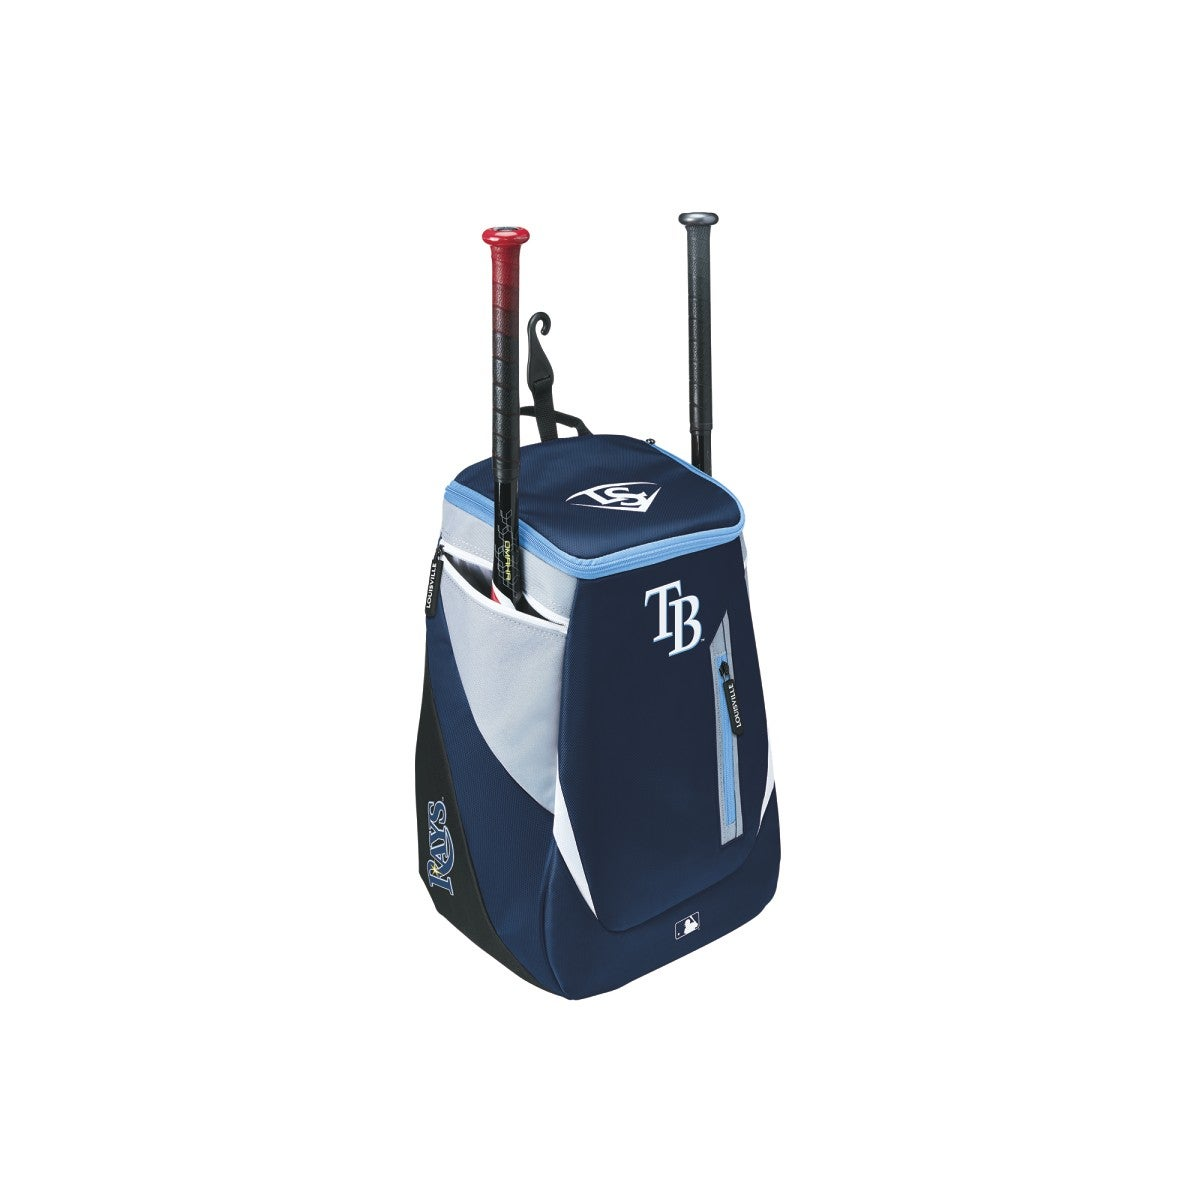 Genuine MLB Bag - Tampa Bay Rays